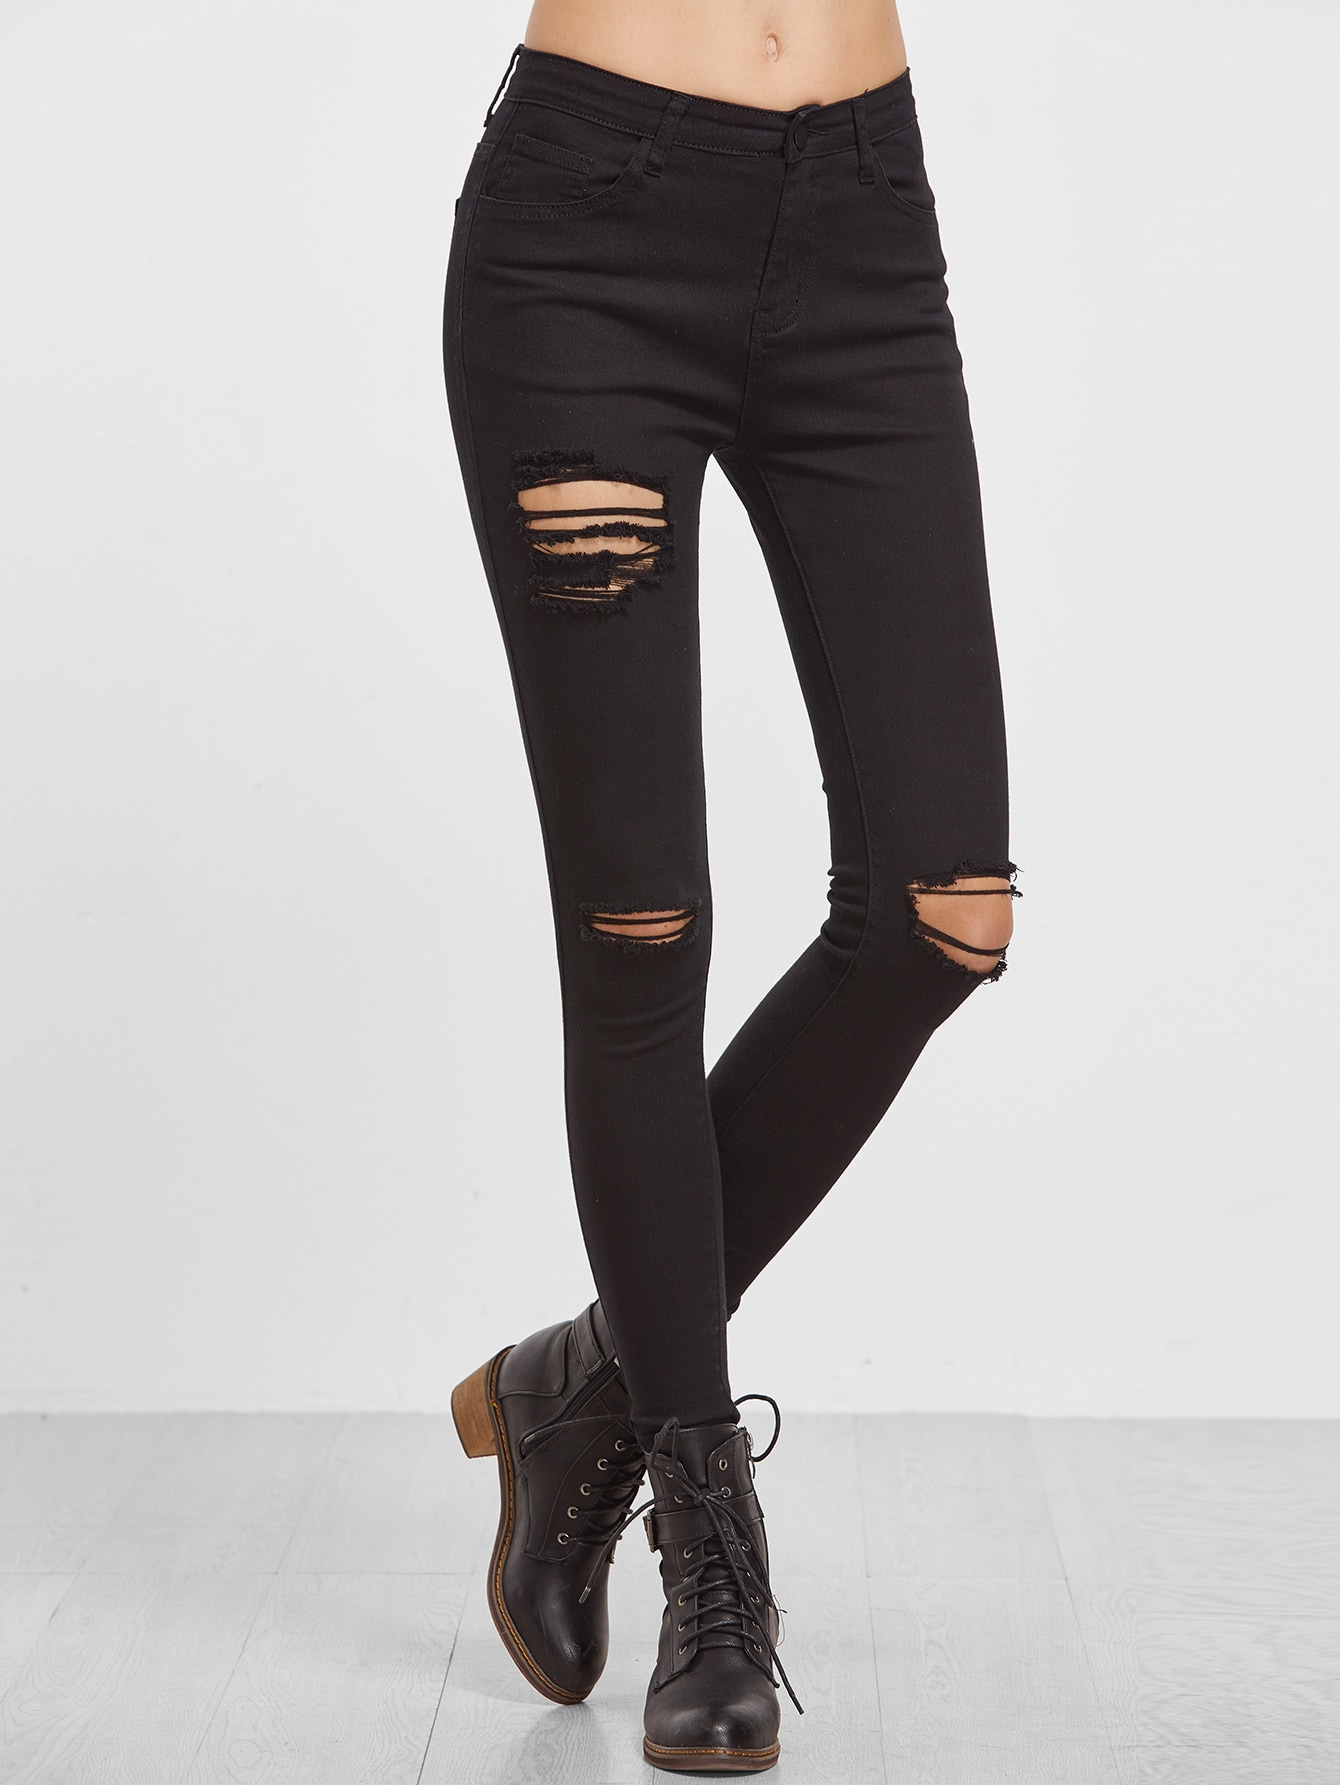 Ripped Skinny Jeans 2016 hole jeans free shipping woman distressed true denim skinny jean pencil pants trousers ripped jeans for women 031